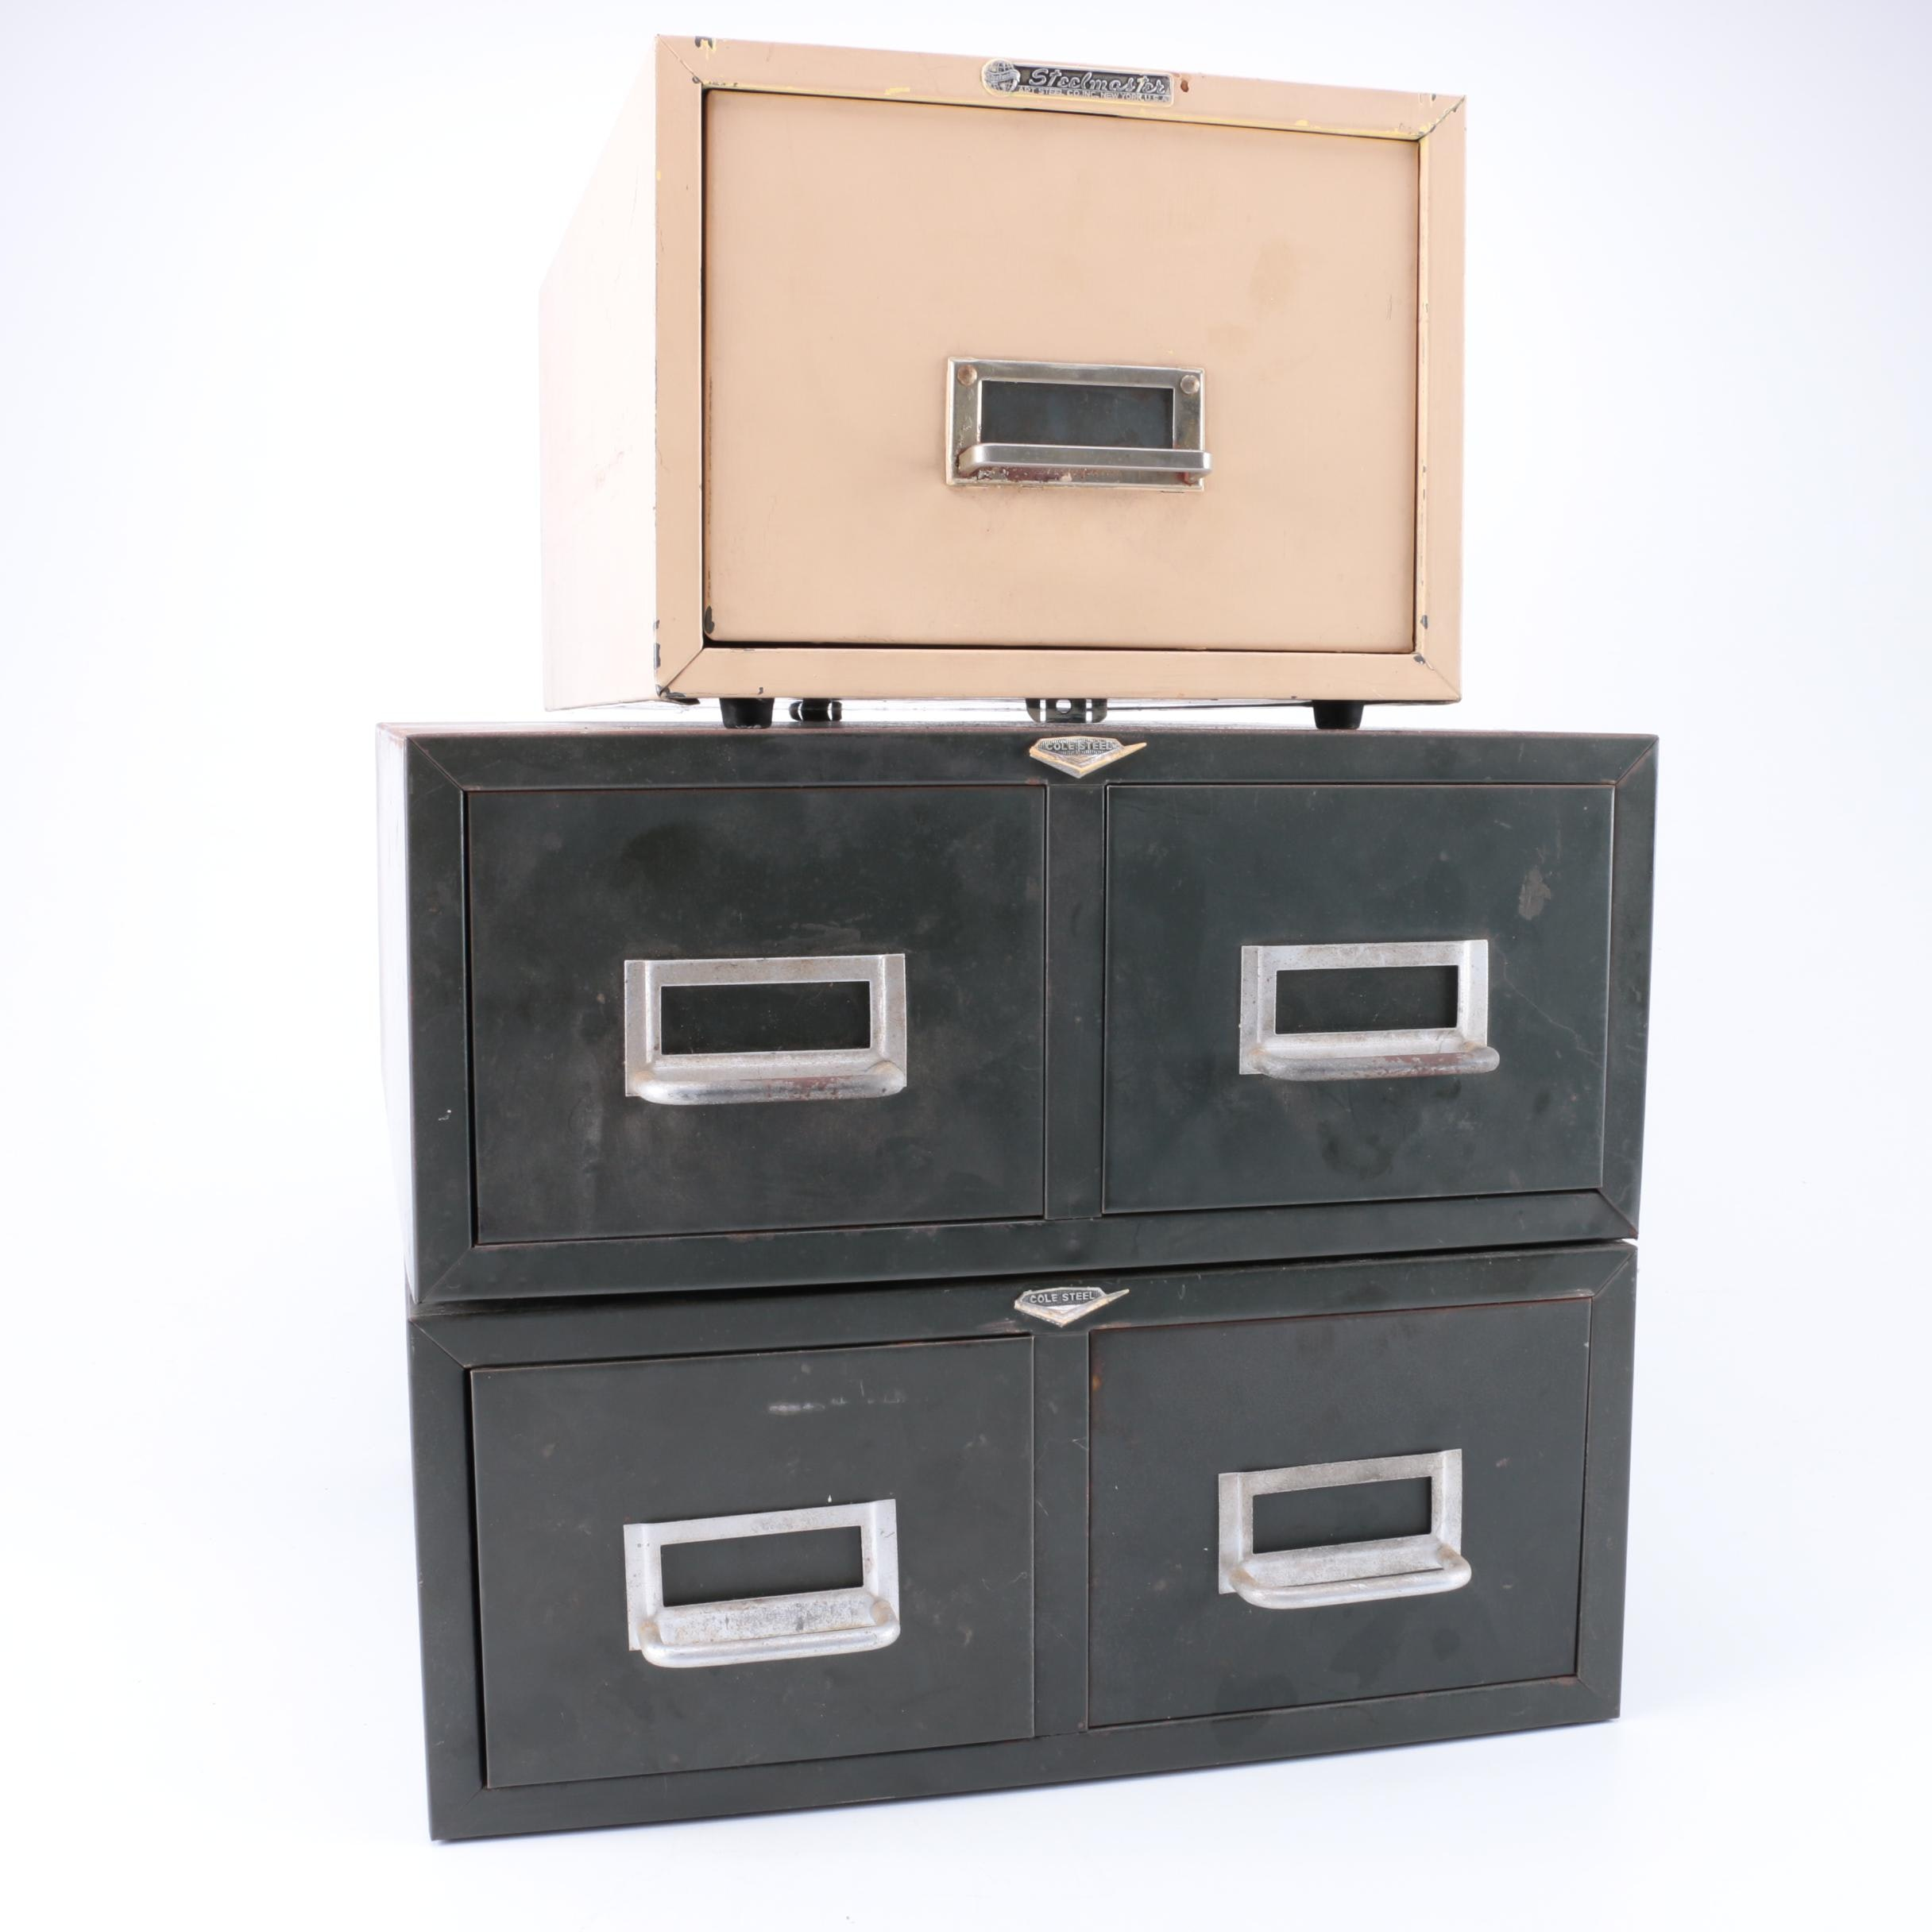 Vintage Filing Cabinets by Cole Steel and Steelmaster